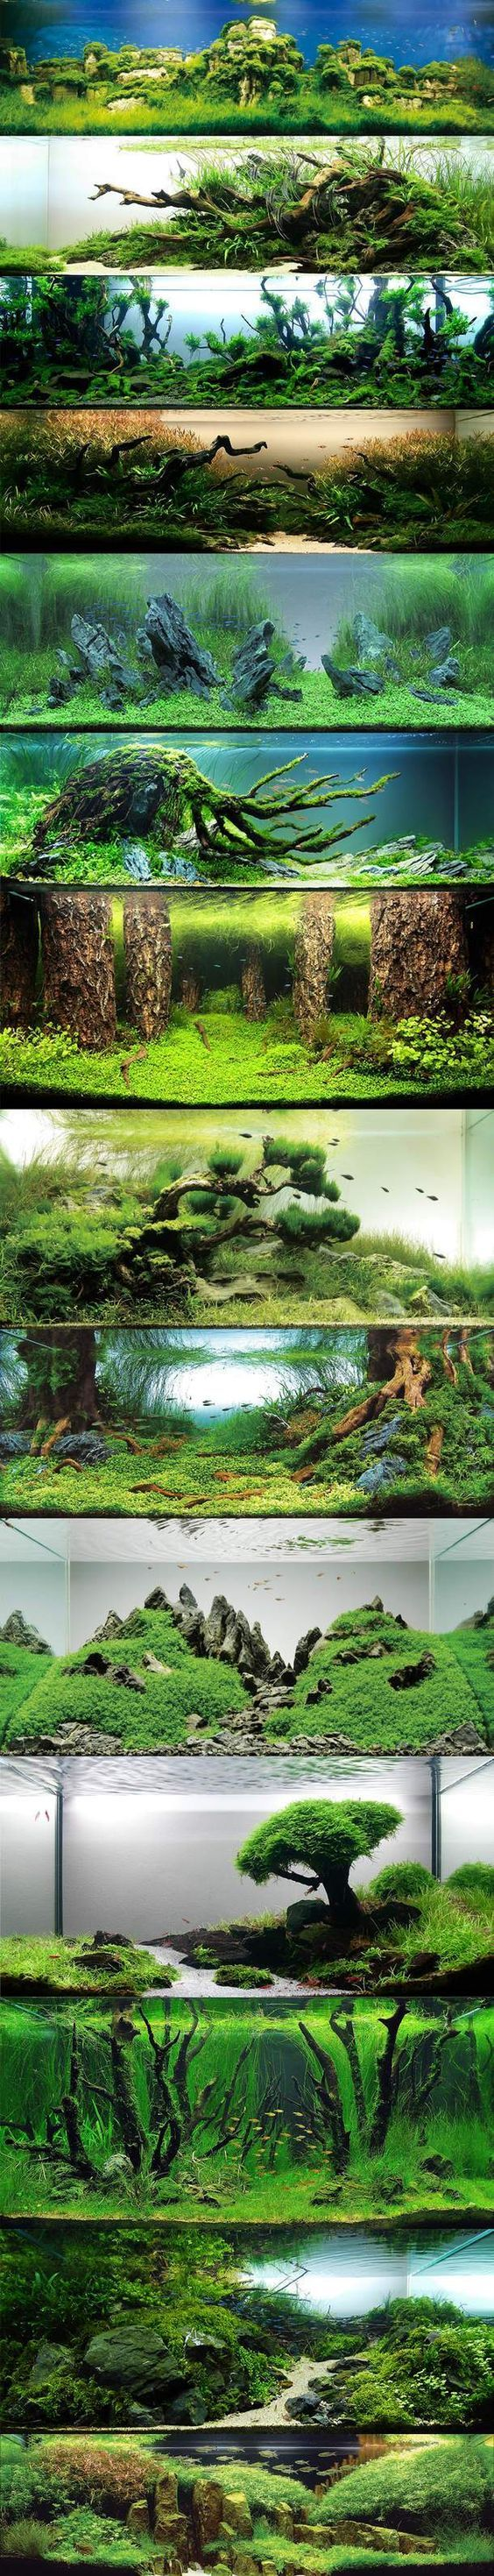 #aquascapes #aquascaping:                                                       …